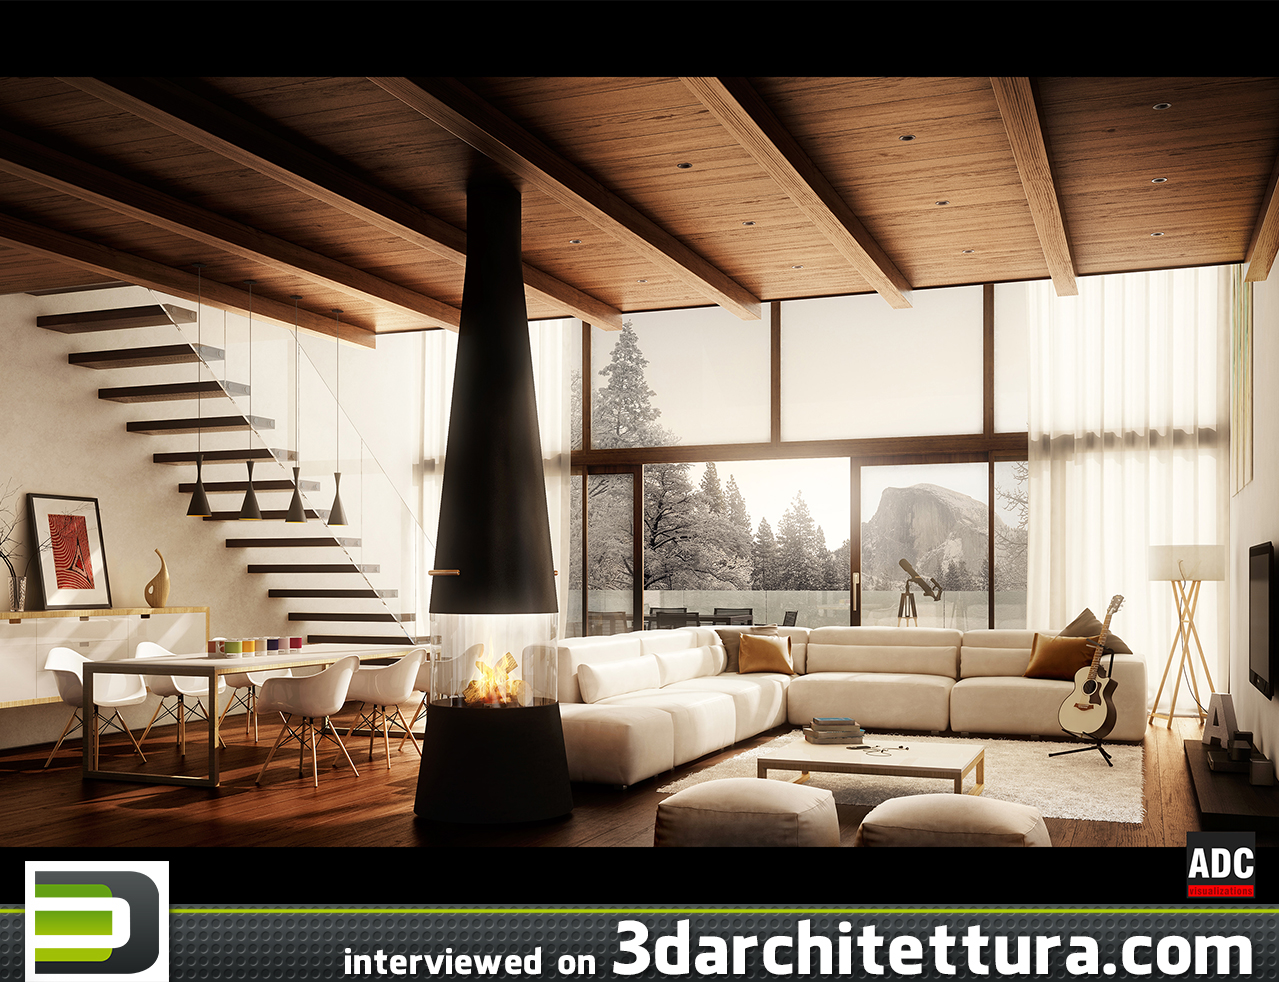 Andrea De Cet interviewed on 3D Architettura: render, 3d, cg, design, architecture